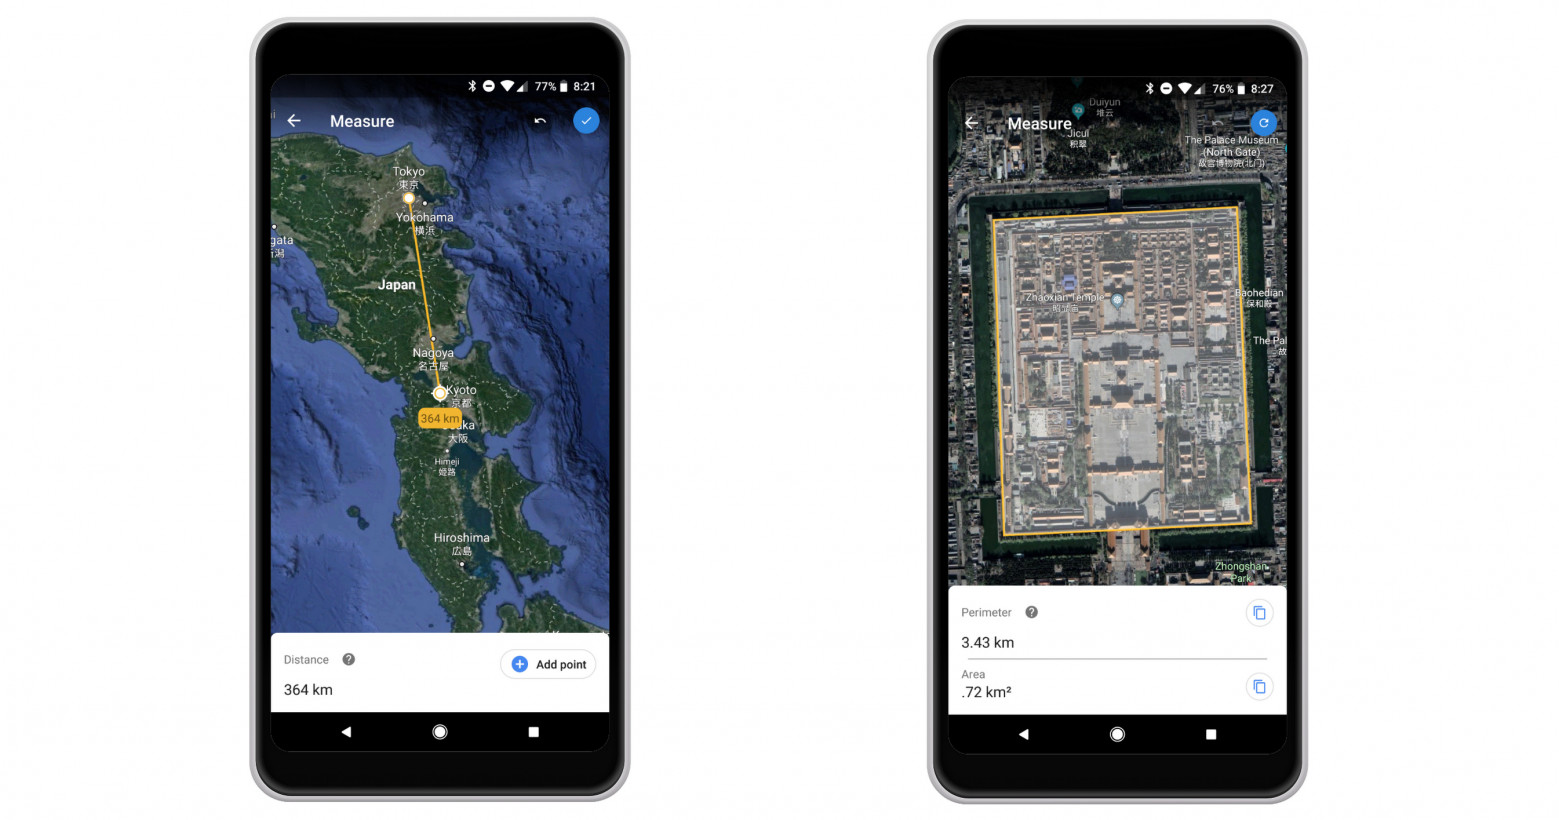 Google Earth's new measuring tool is a fun toy for geography ... on windows mobile, google mobile car, spotify mobile, chrome mobile, gmail mobile,